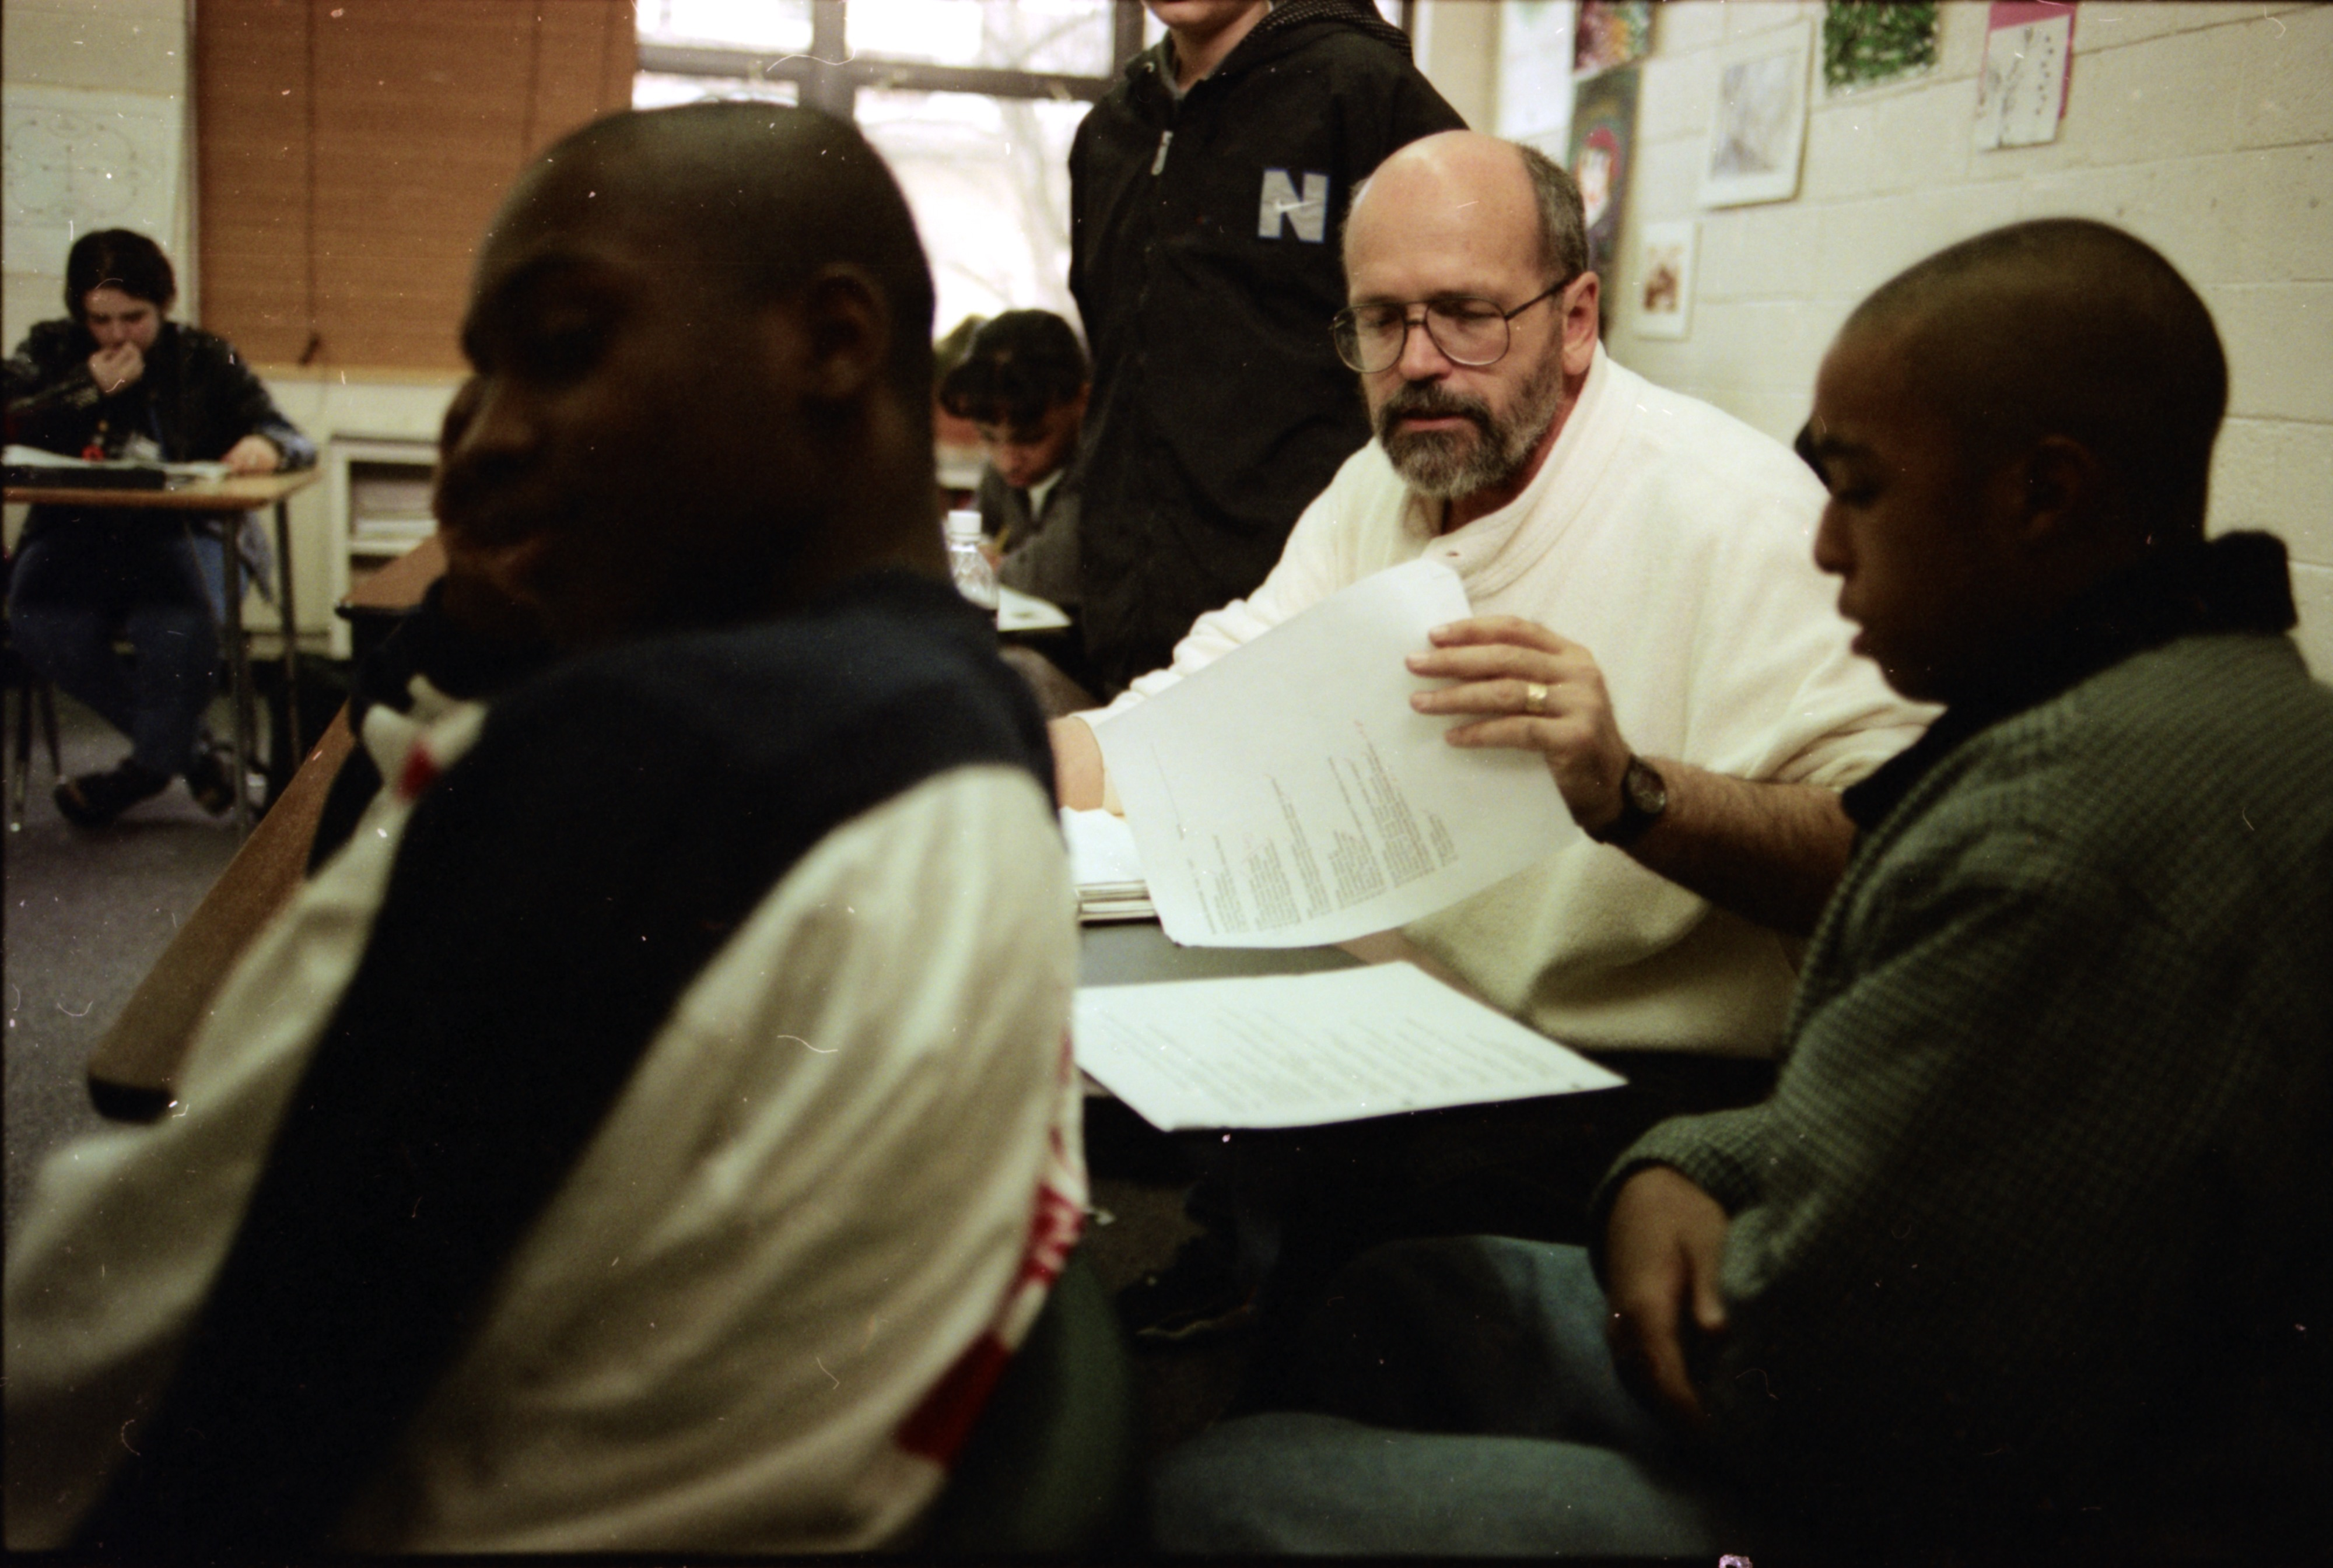 Lead Teacher Rich Ballard at the New School, February 1997 image